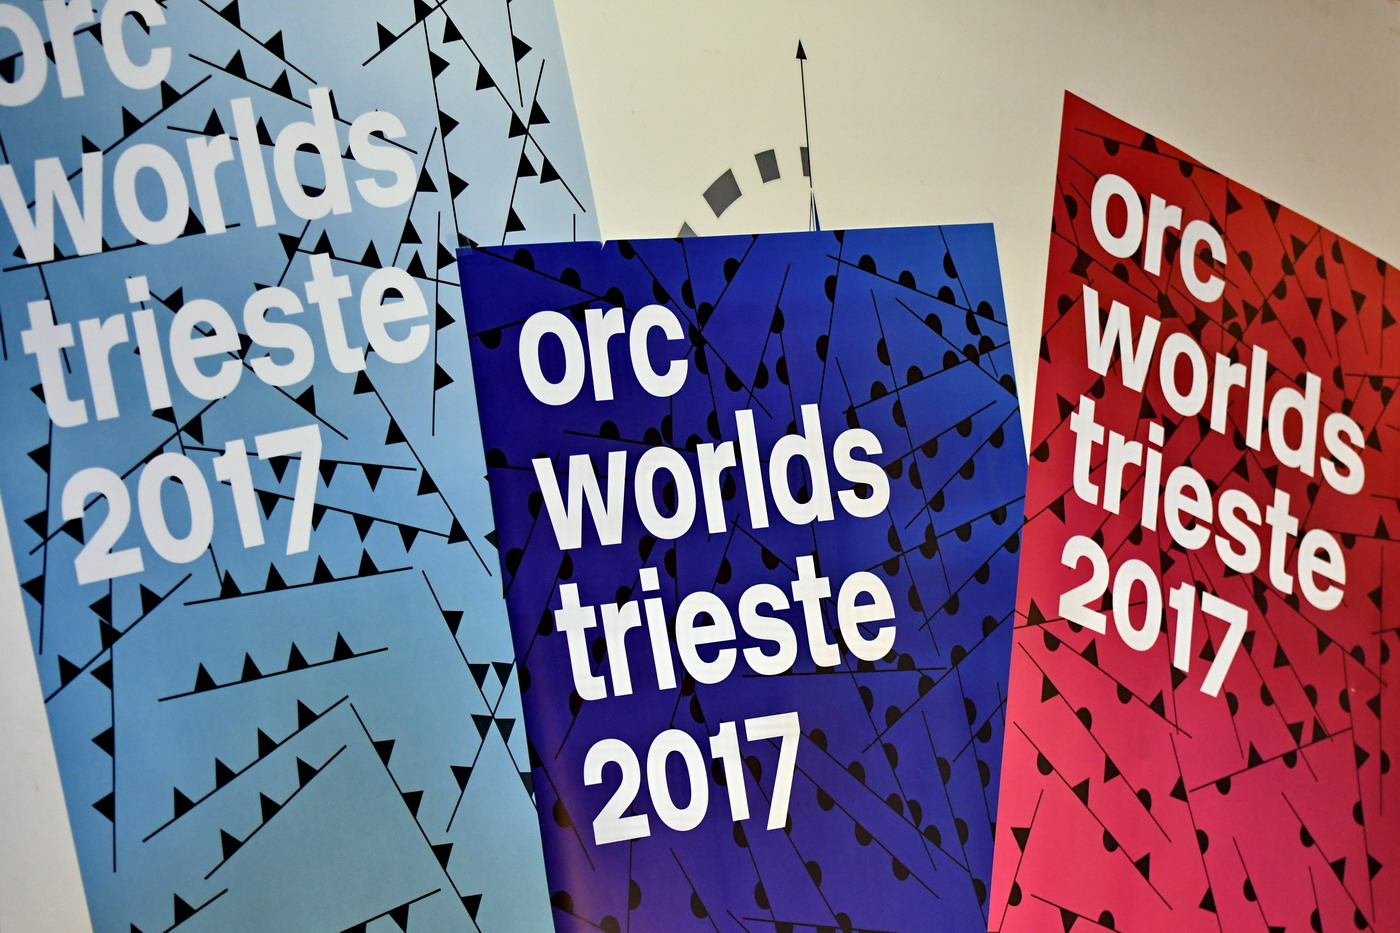 ORC Worlds Trieste 2017